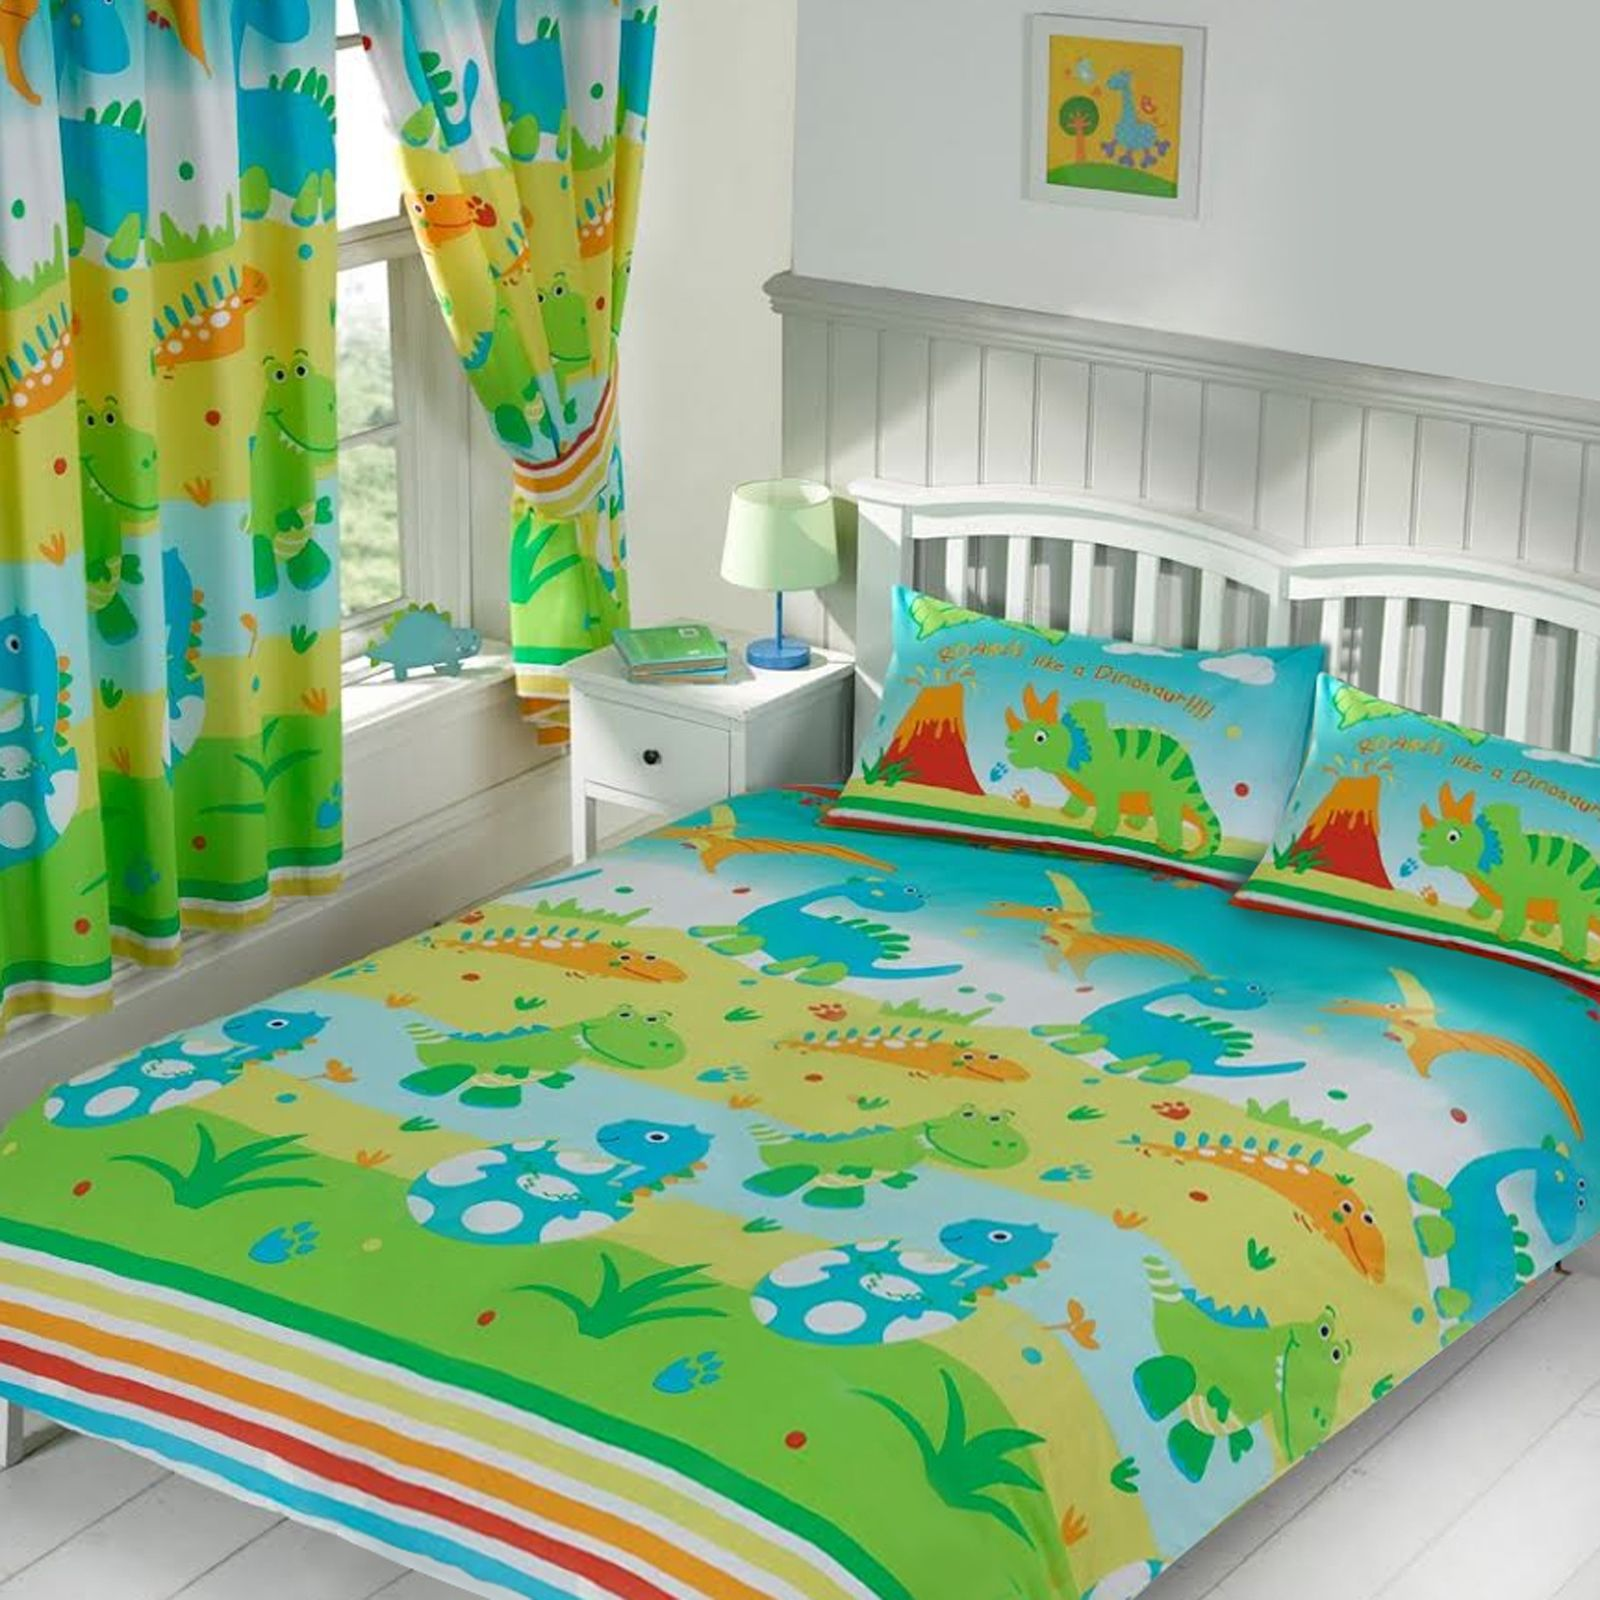 kinder doppelbett bettw sche sets dinosaur armee v gel einhorn jungen m dchen ebay. Black Bedroom Furniture Sets. Home Design Ideas